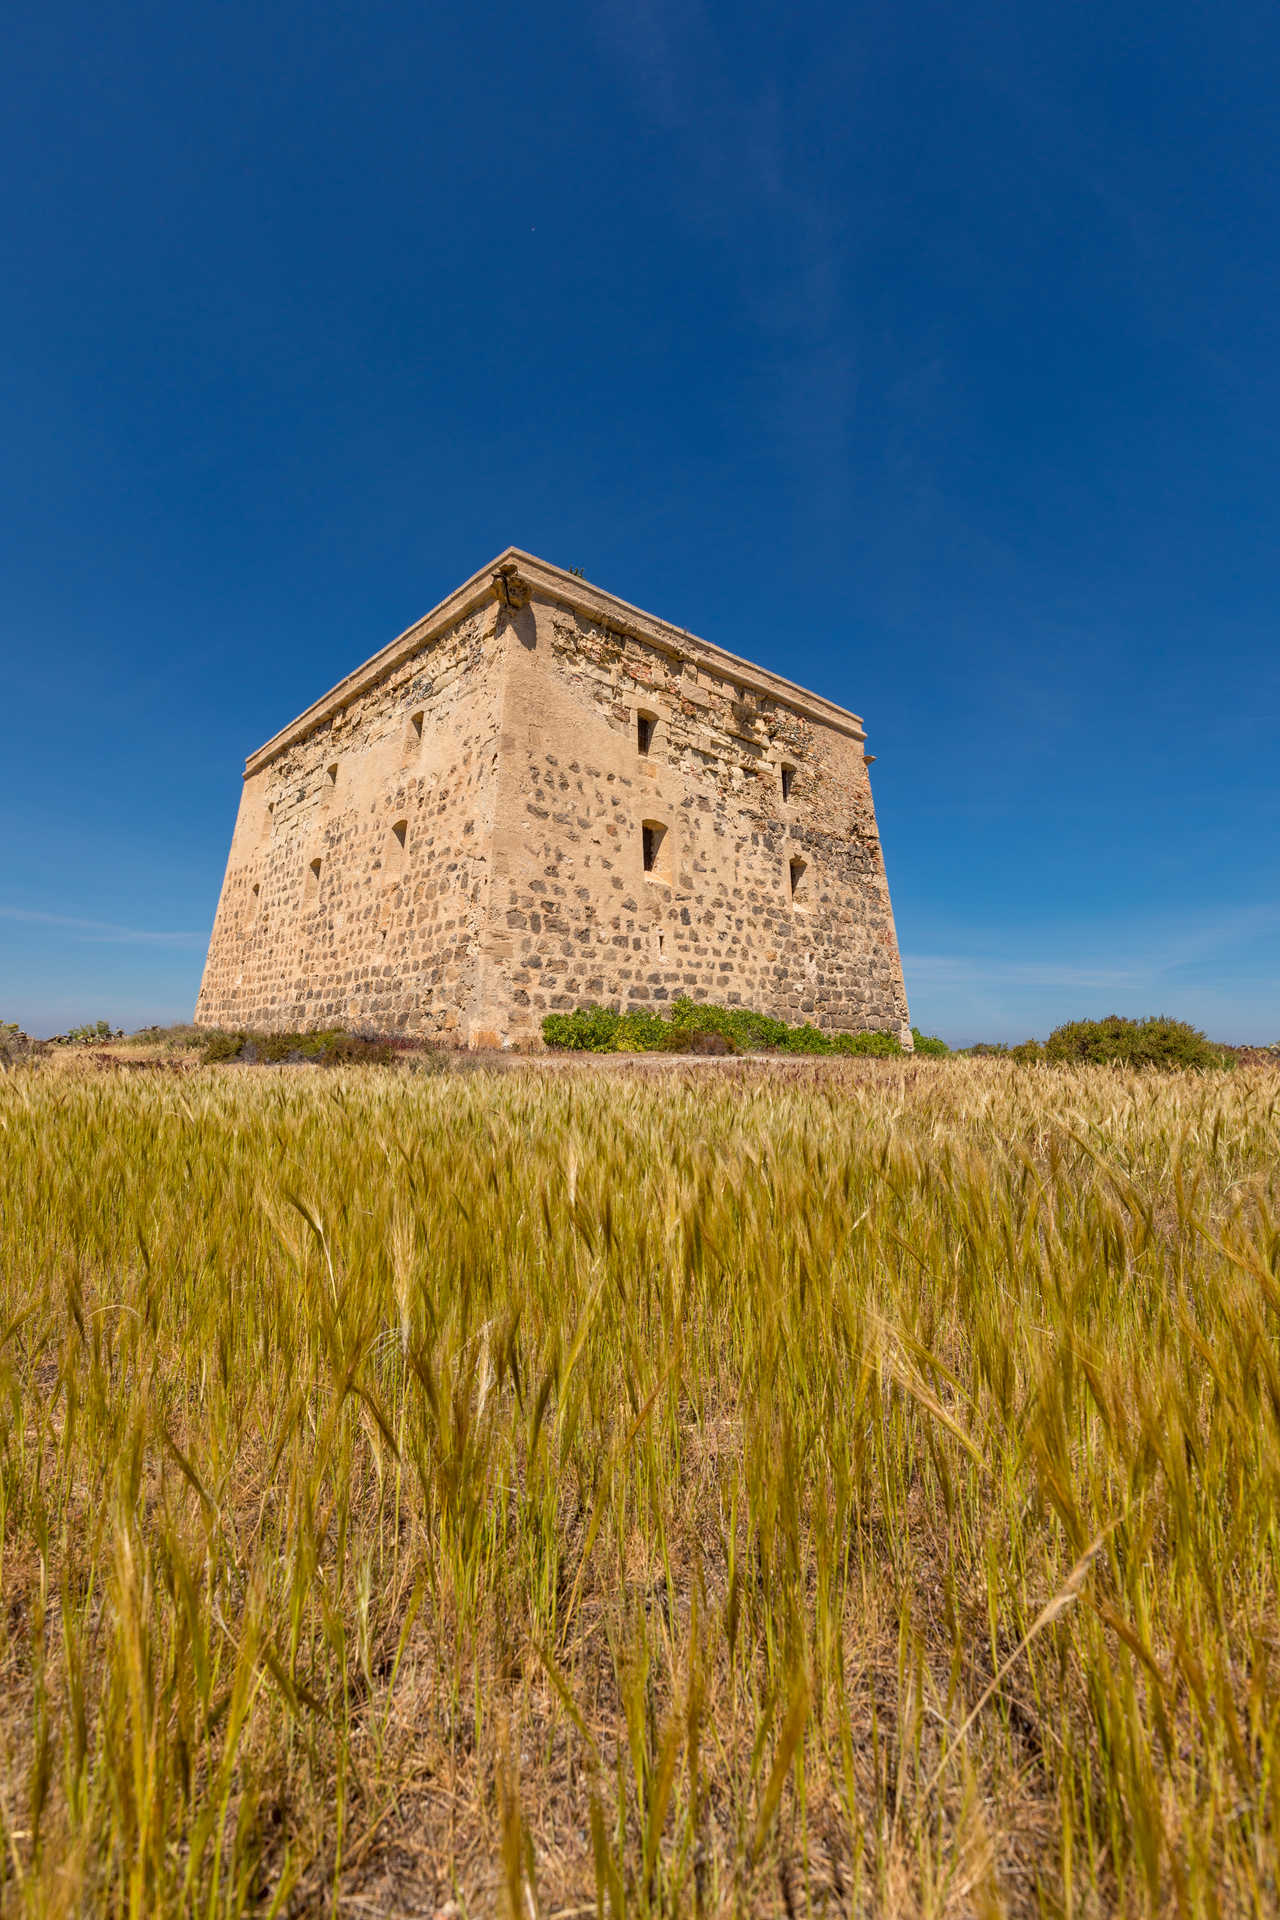 The San José Tower / Tabarca